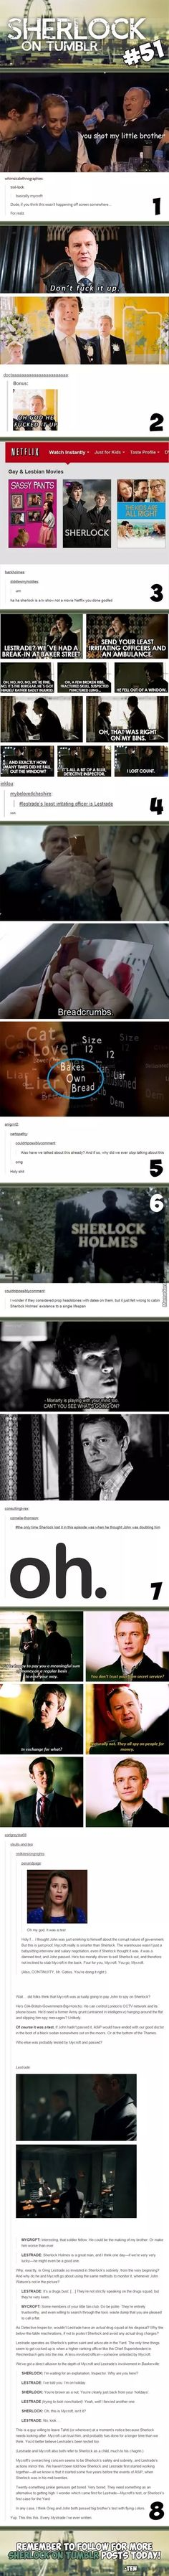 Sherlock On Tumblr #51